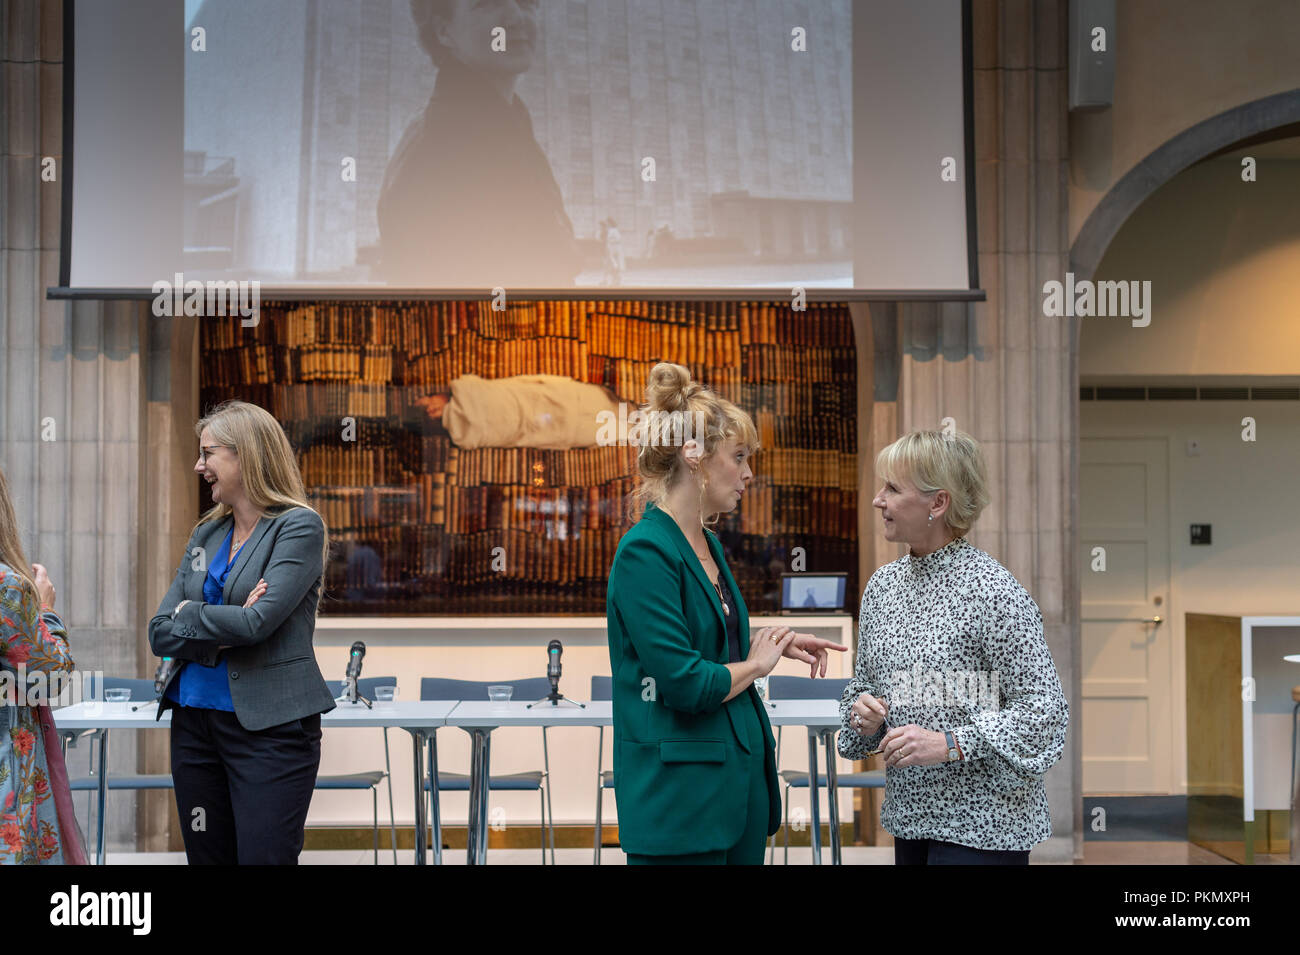 Stockholm, Sweden, September 14, 2018. Seminar about Agda Rössel (1910-2001) Sweden's and the world's first female UN ambassador. Author Elin Jäderström (left) and Foreign Minister Margot Wallström (right). The seminar is held at the Ministry of Foreign Affairs.Credit: Barbro Bergfeldt/Alamy Live News Stock Photo